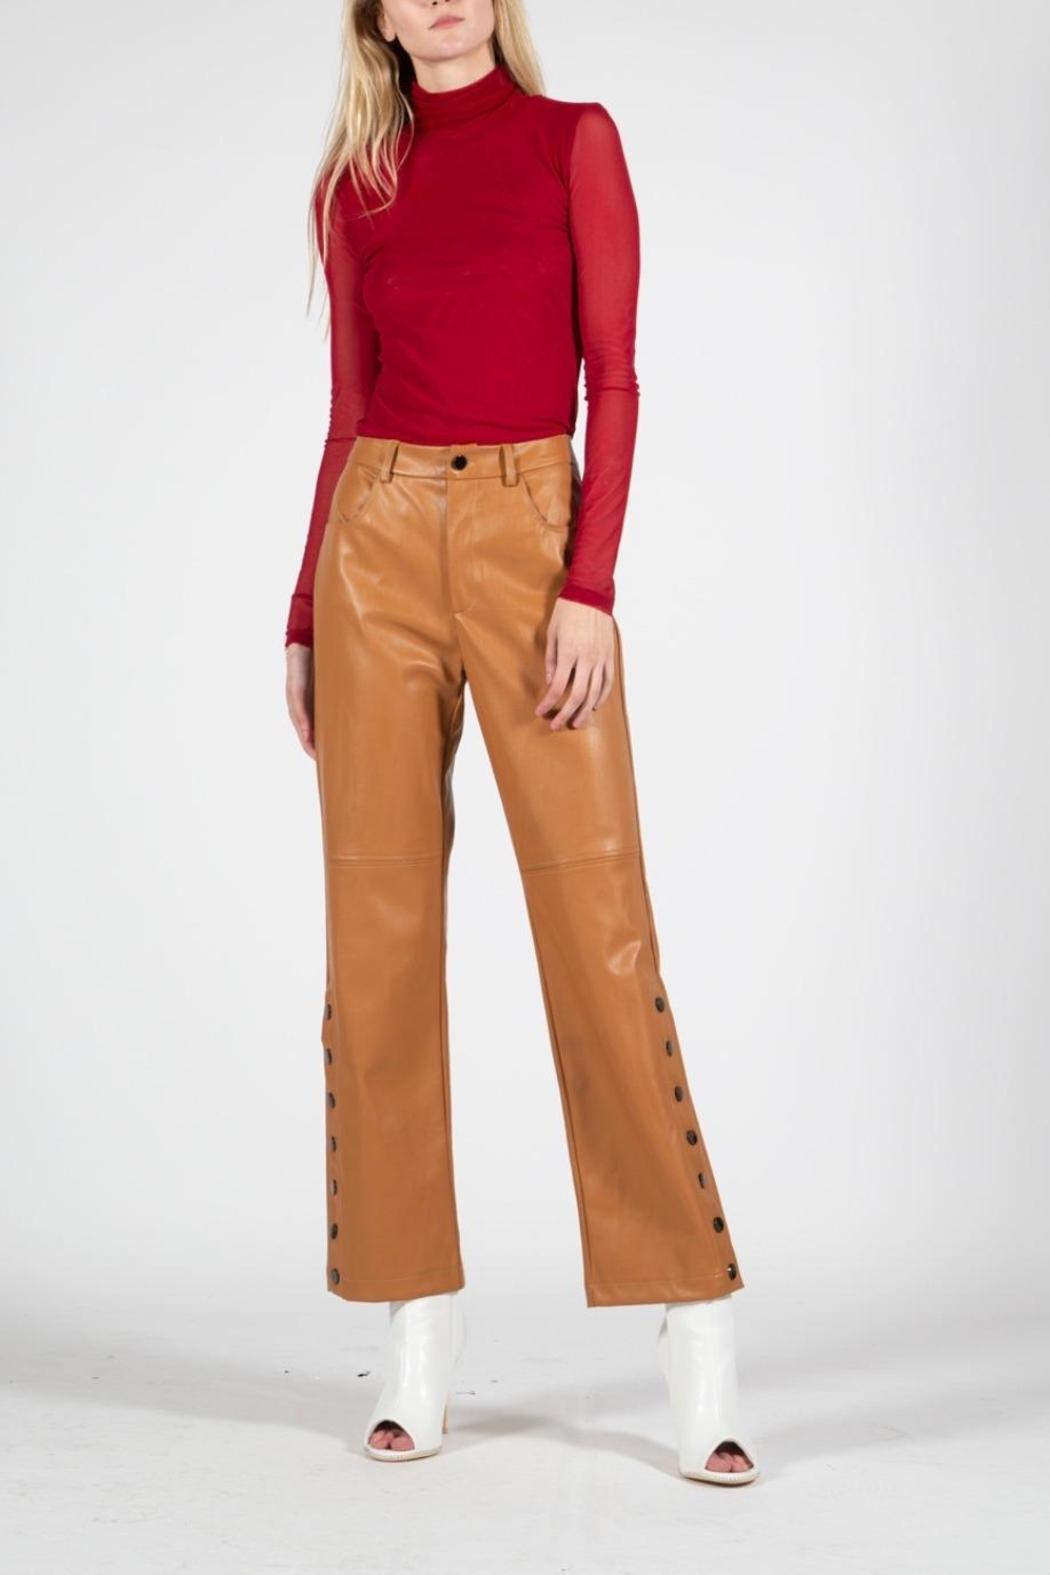 BEULAH STYLE Camel Leather Pants - Main Image